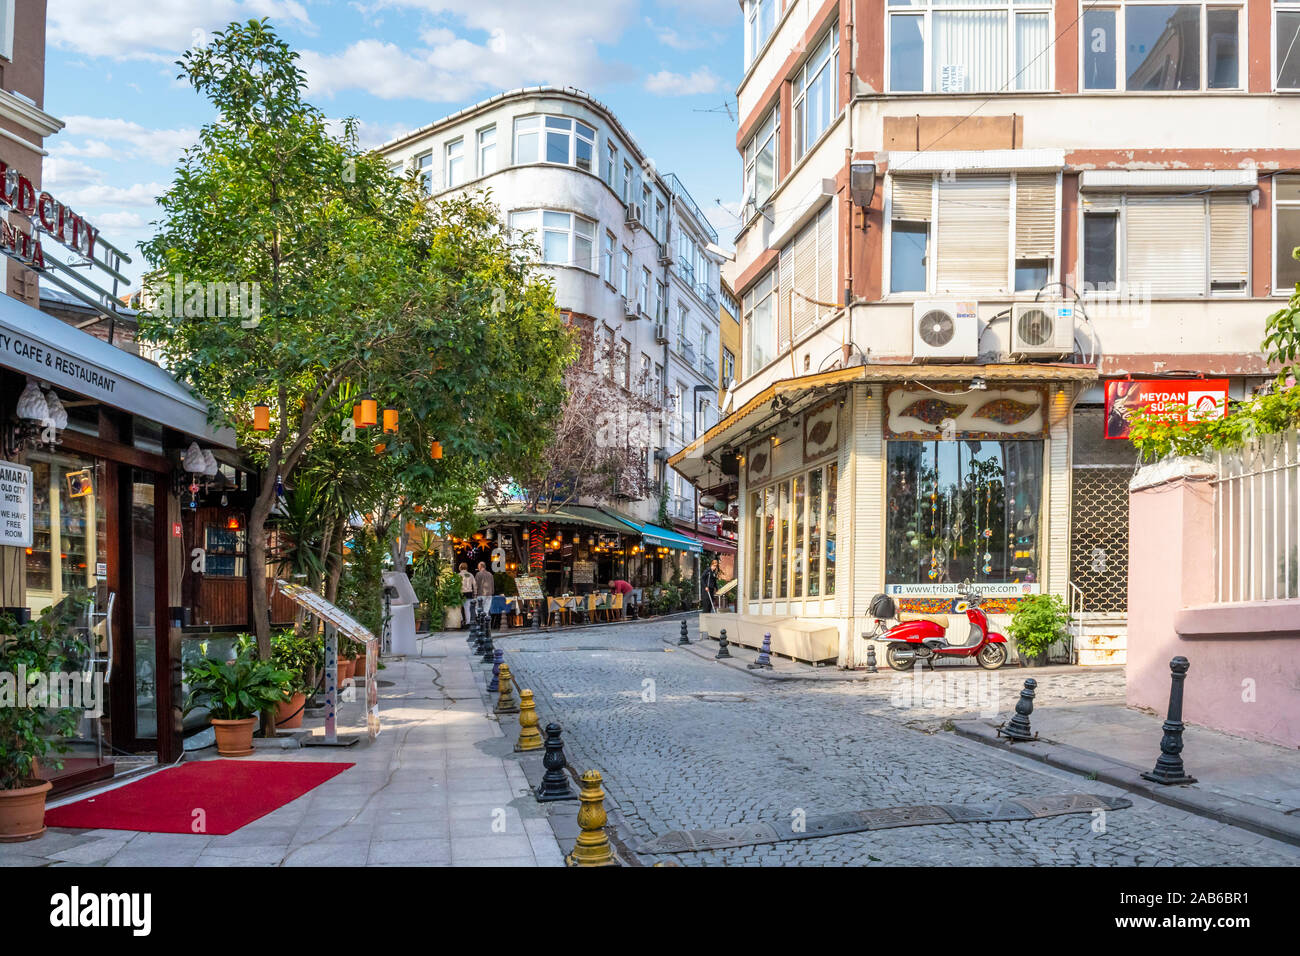 A street of cafes and shops with a motor scooter parked in a touristic section of Sultanahmet in Istanbul, Turkey Stock Photo